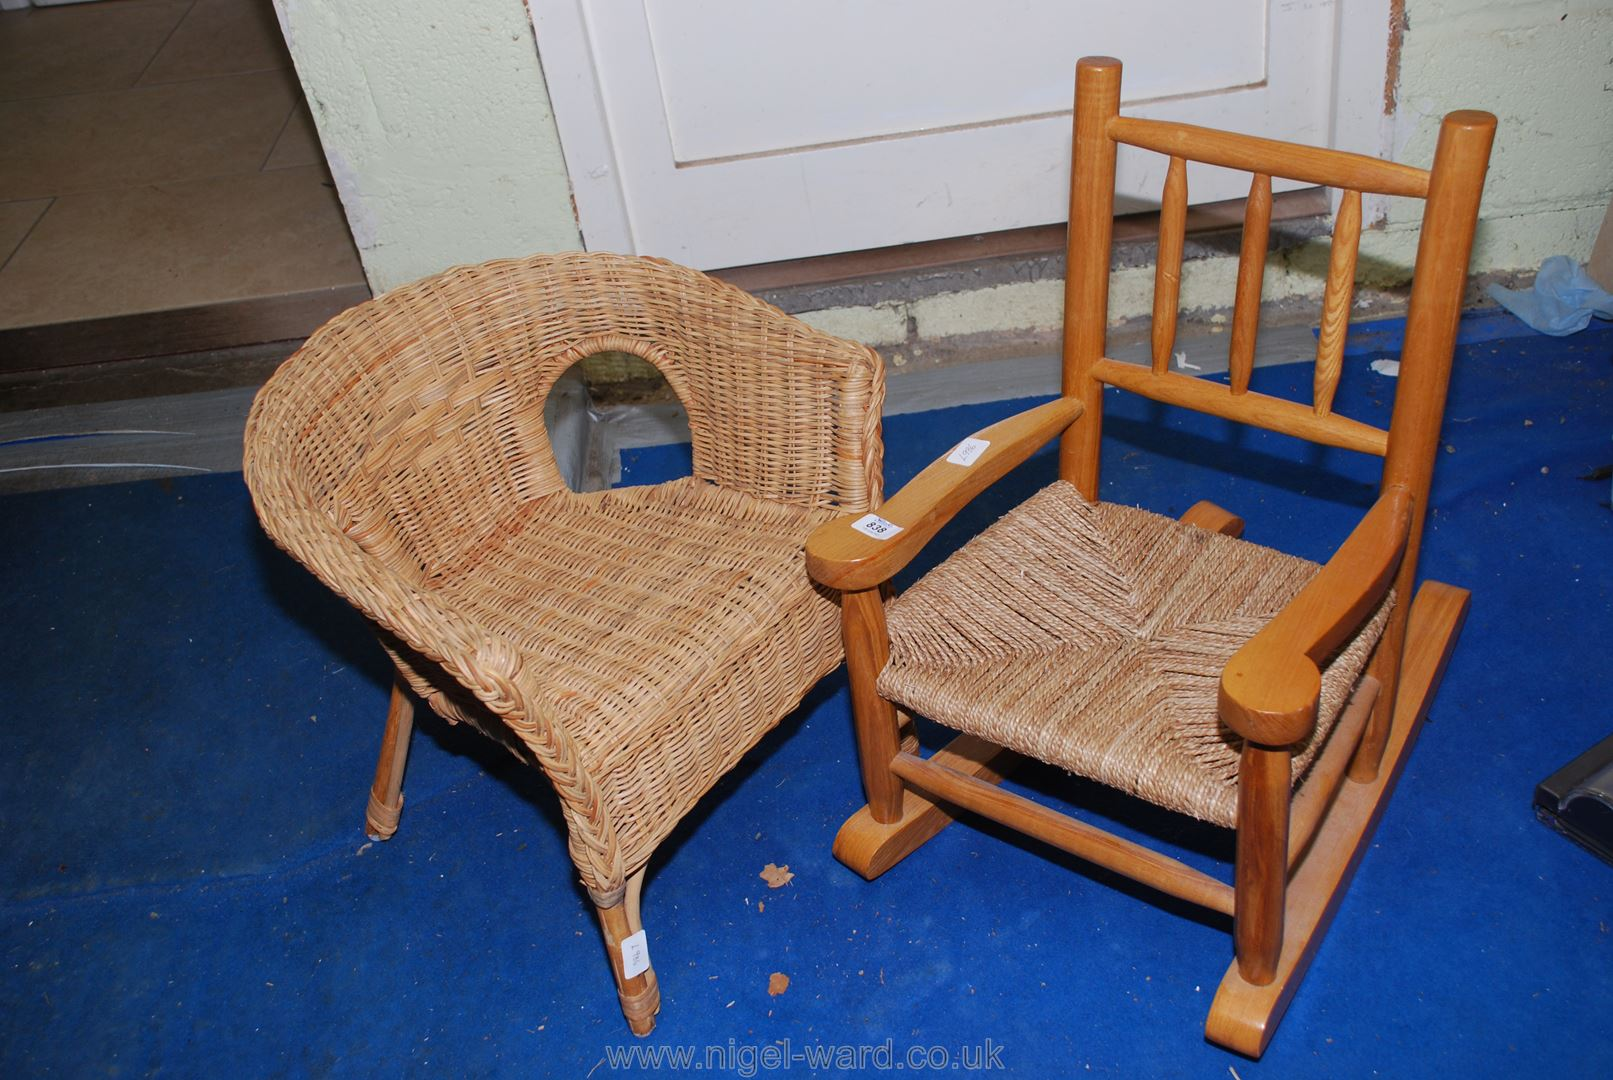 A children's wicker chair and string seated rocking chair.